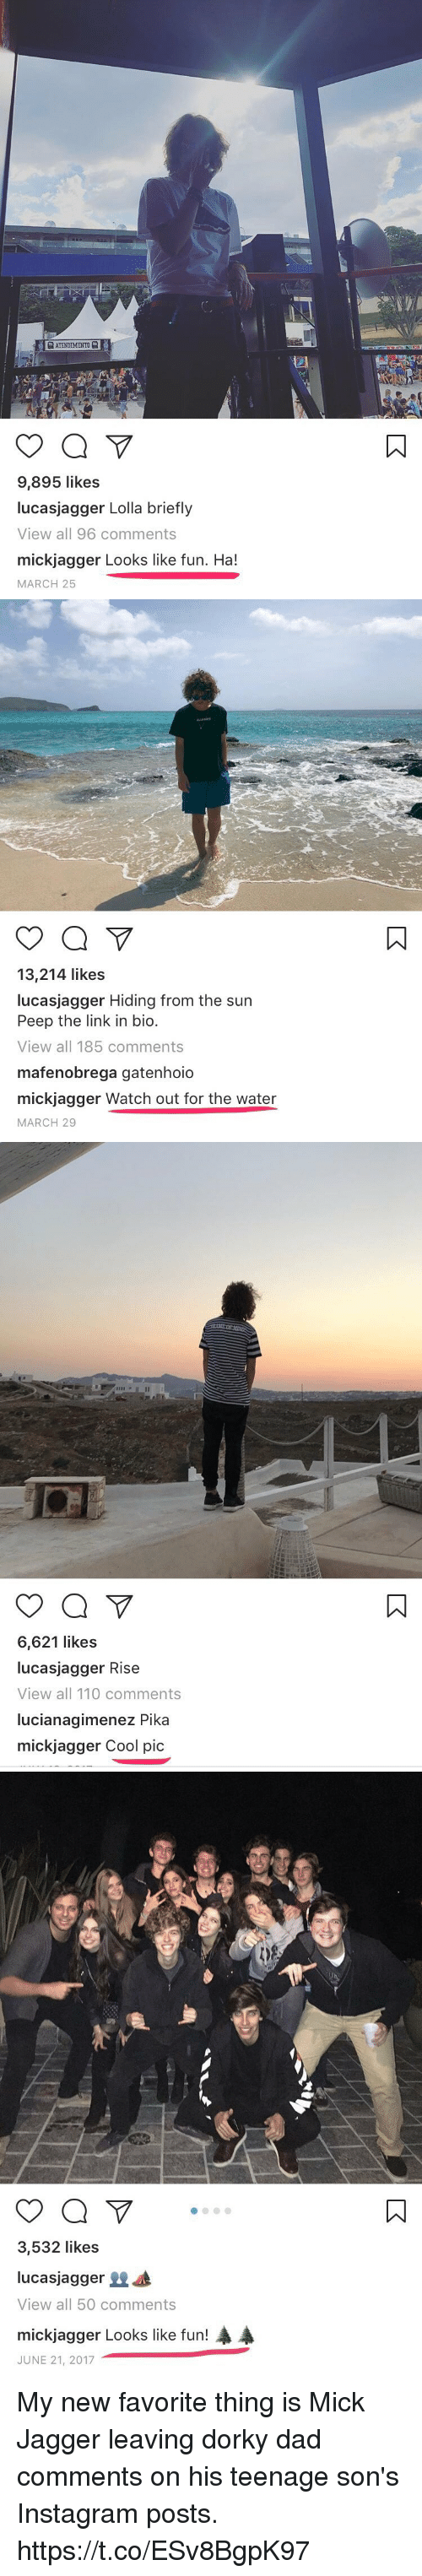 Mick Jagger: ATENDIMENTO  9,895 likes  lucasjagger Lolla briefly  View all 96 comments  mickjagger Looks like fun. Ha!  MARCH 25   13,214 likes  lucasjagger Hiding from the sun  Peep the link in bio  View all 185 comments  mafenobrega gatenhoio  mickjagger Watch out for the water  MARCH 29   6,621 likes  lucasjagger Rise  View all 110 comments  lucianagimenez Pika  mickjagger Cool pic   3,532 likes  lucasjagger  View all 50 comments  A  mickjagger Looks like fun!  JUNE 21, 2017 My new favorite thing is Mick Jagger leaving dorky dad comments on his teenage son's Instagram posts. https://t.co/ESv8BgpK97